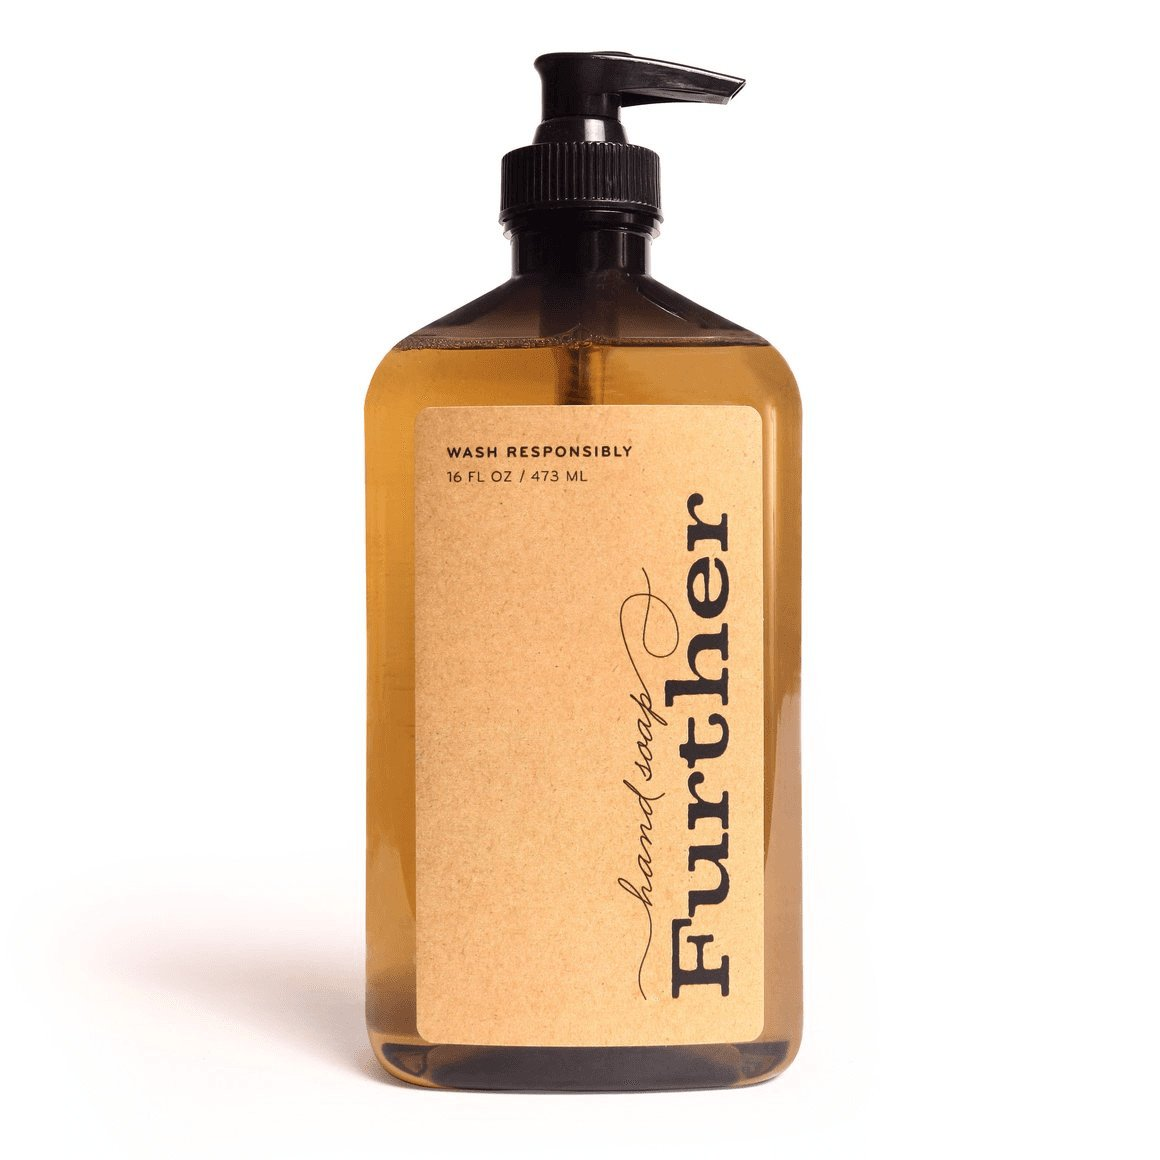 Further Fresh Smelling Glycerin Liquid Hand Soap 16oz Hand Soap - Fresh Smelling Sustainable Glycerin Soap - Glycerin Hand Soap - Glycerin Liquid Hand Soap Clean Your Hands & Freshen Your Conscience and Inspire Your Soul - Nohprec Experience